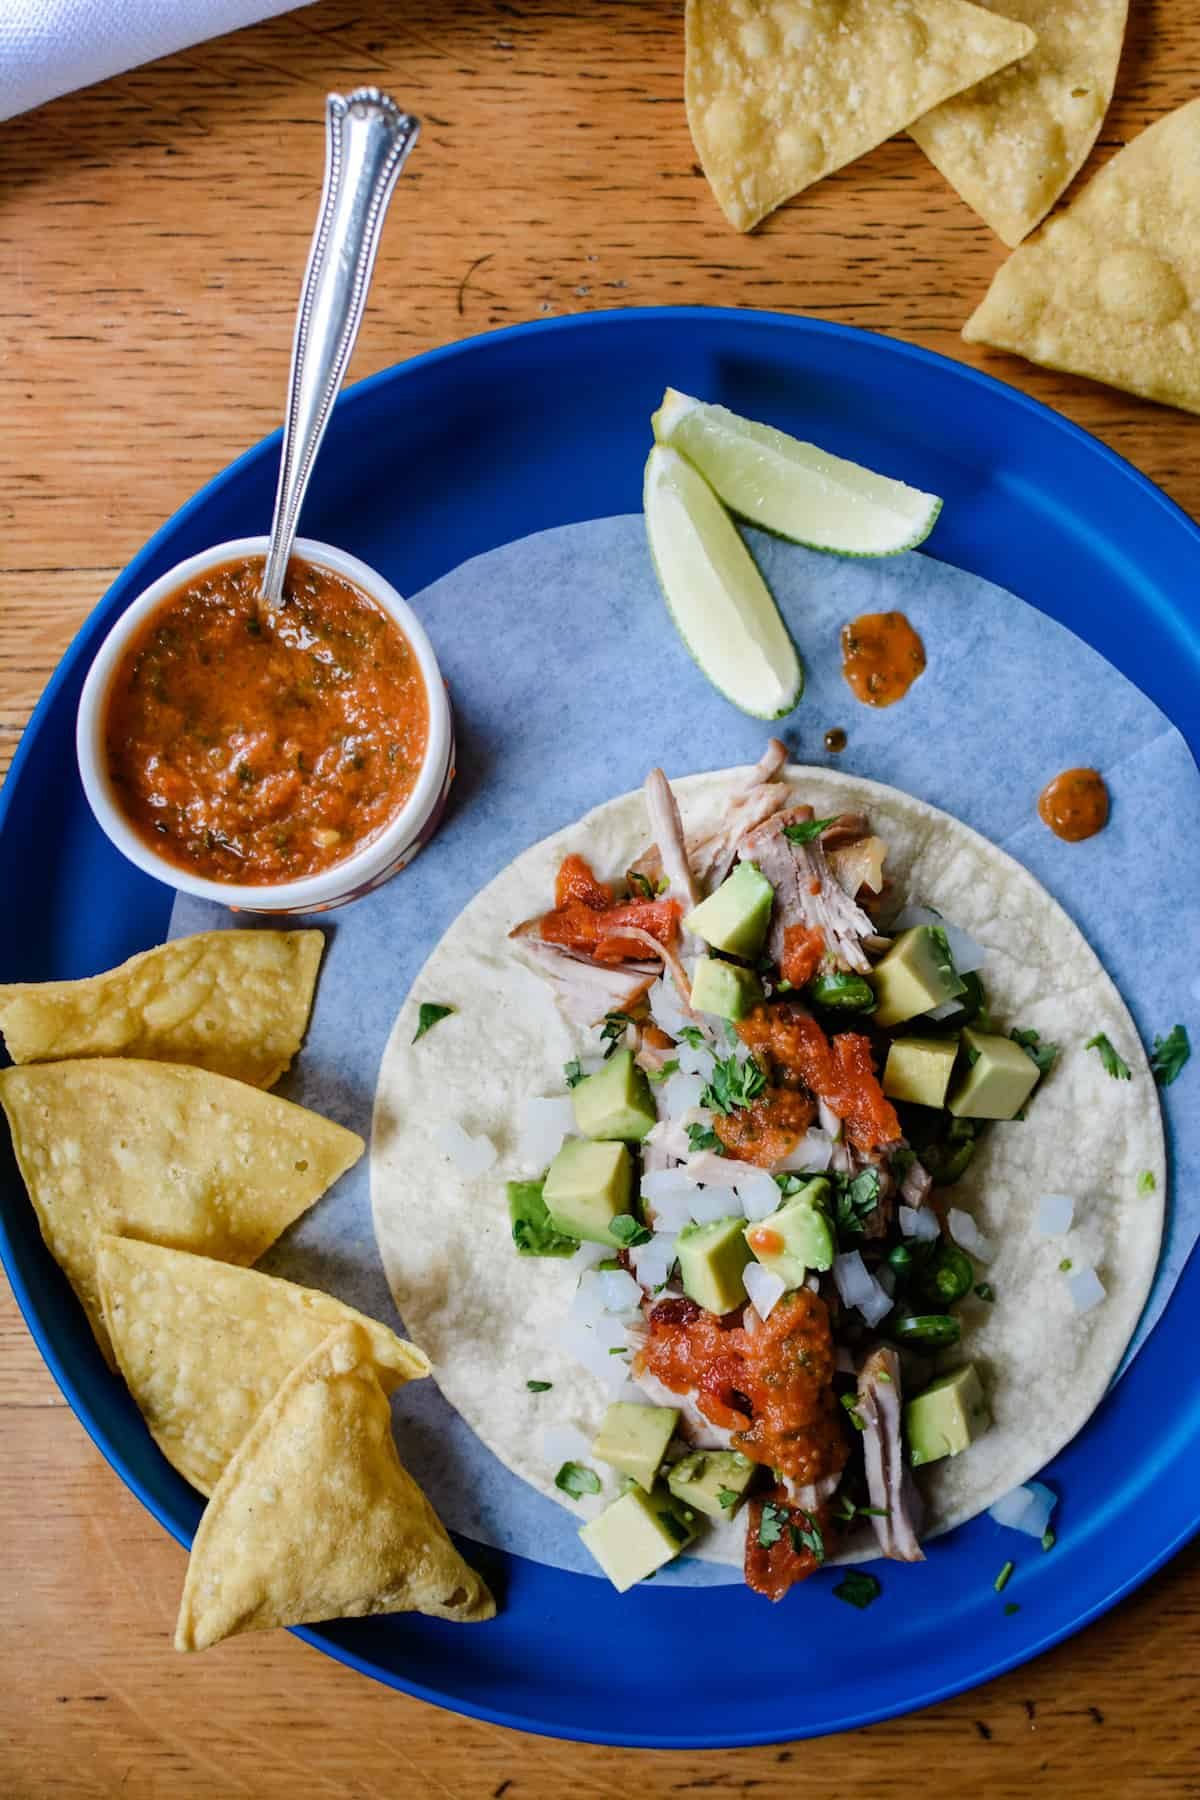 A blue plate with a small dish of salsa, tortilla chips, lime wedges, and a taco on it. The taco is topped with avocado, onions, and cilantro.